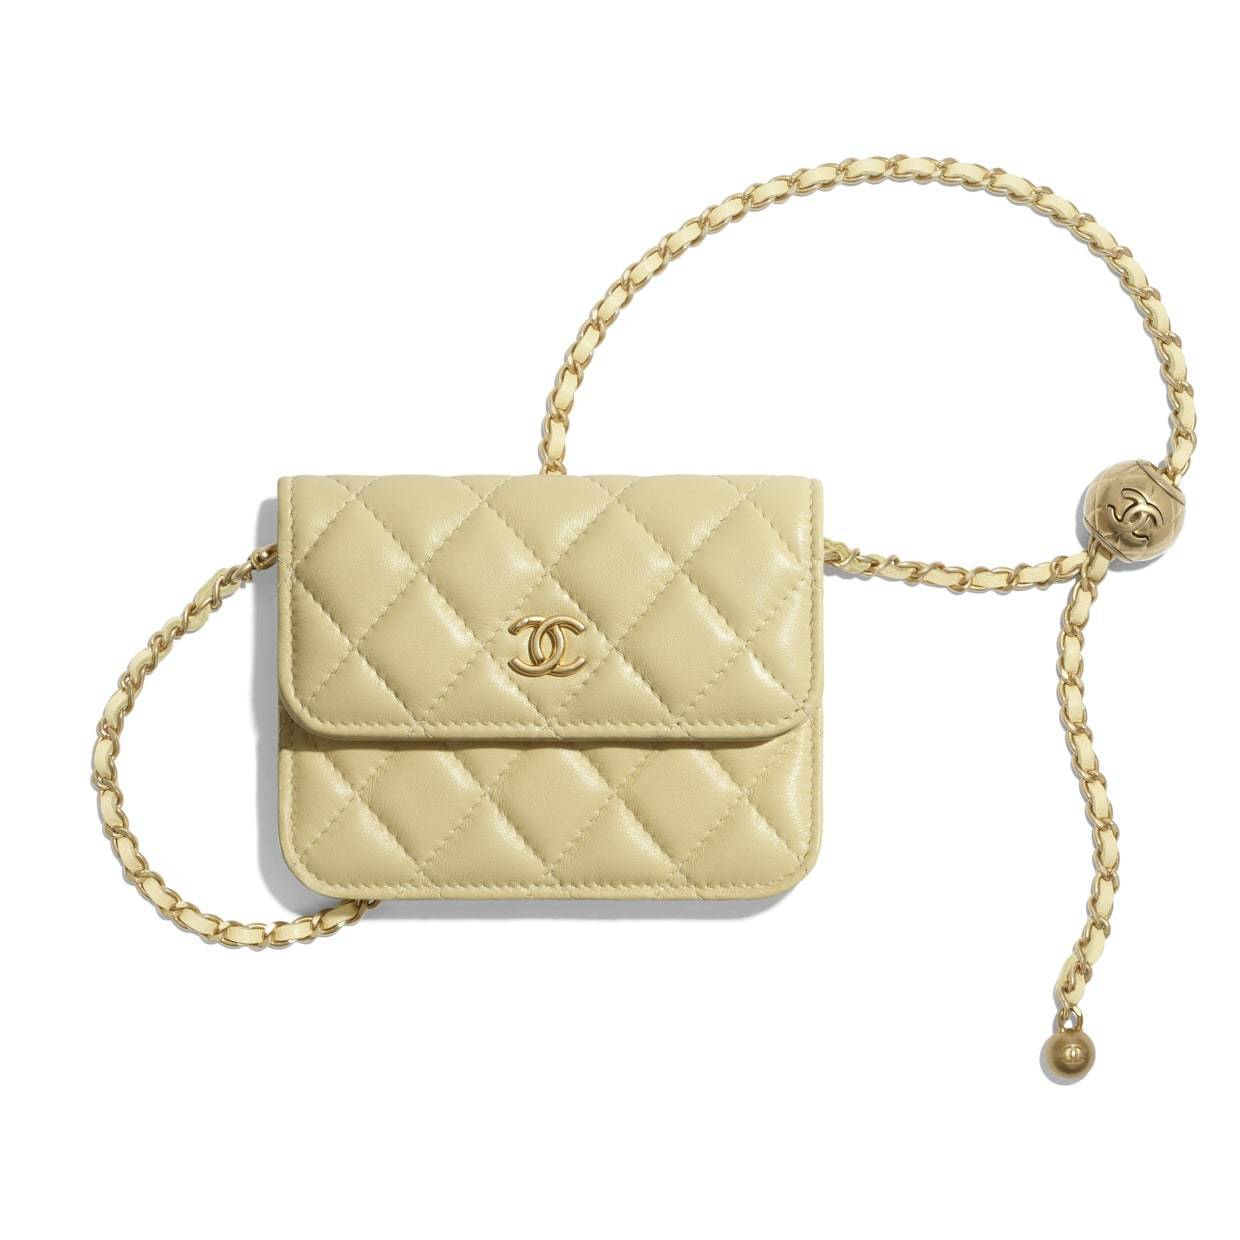 CHANEL CHANEL ☆clutch with chain ☆AP1628 B02916 NA105